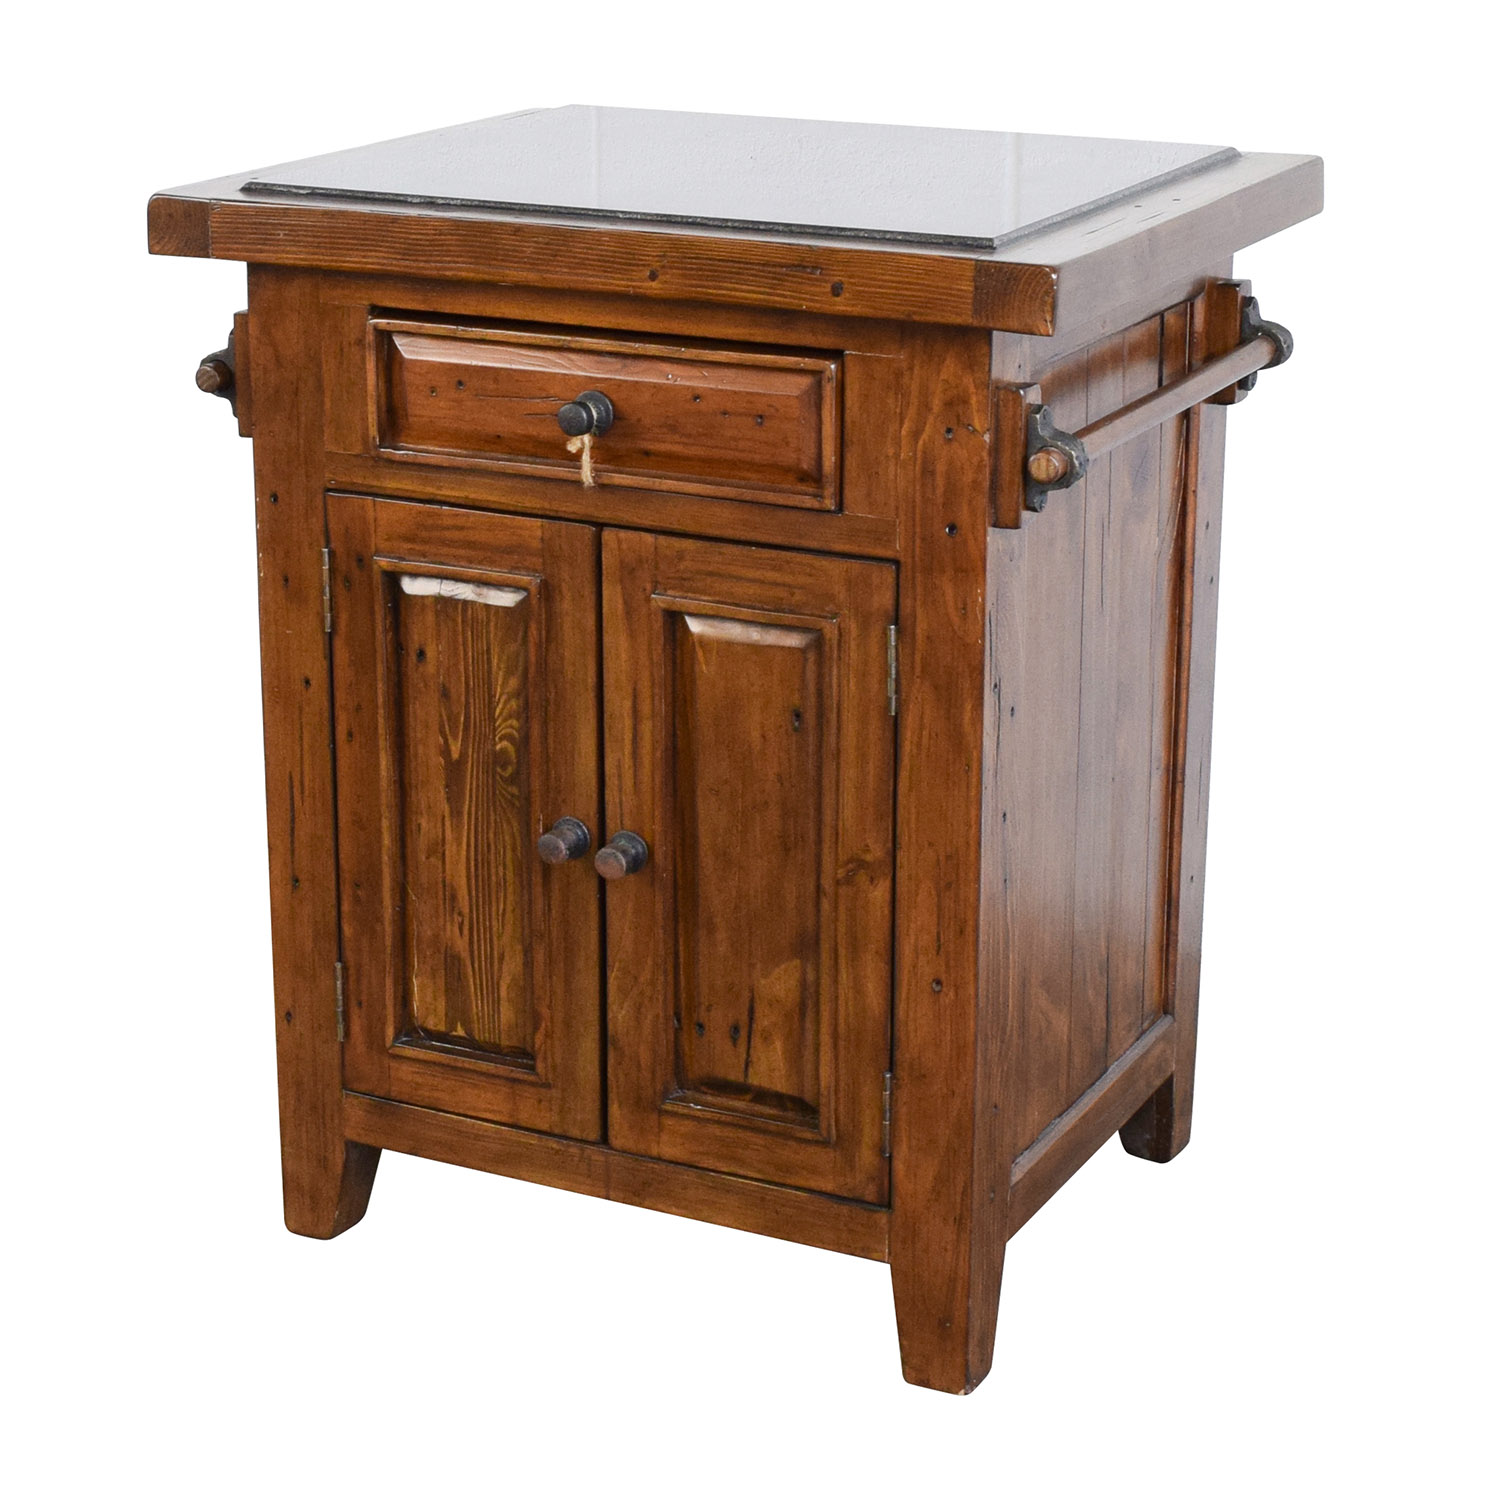 kitchen island discount country table sets 65 off wood with black marble top tables